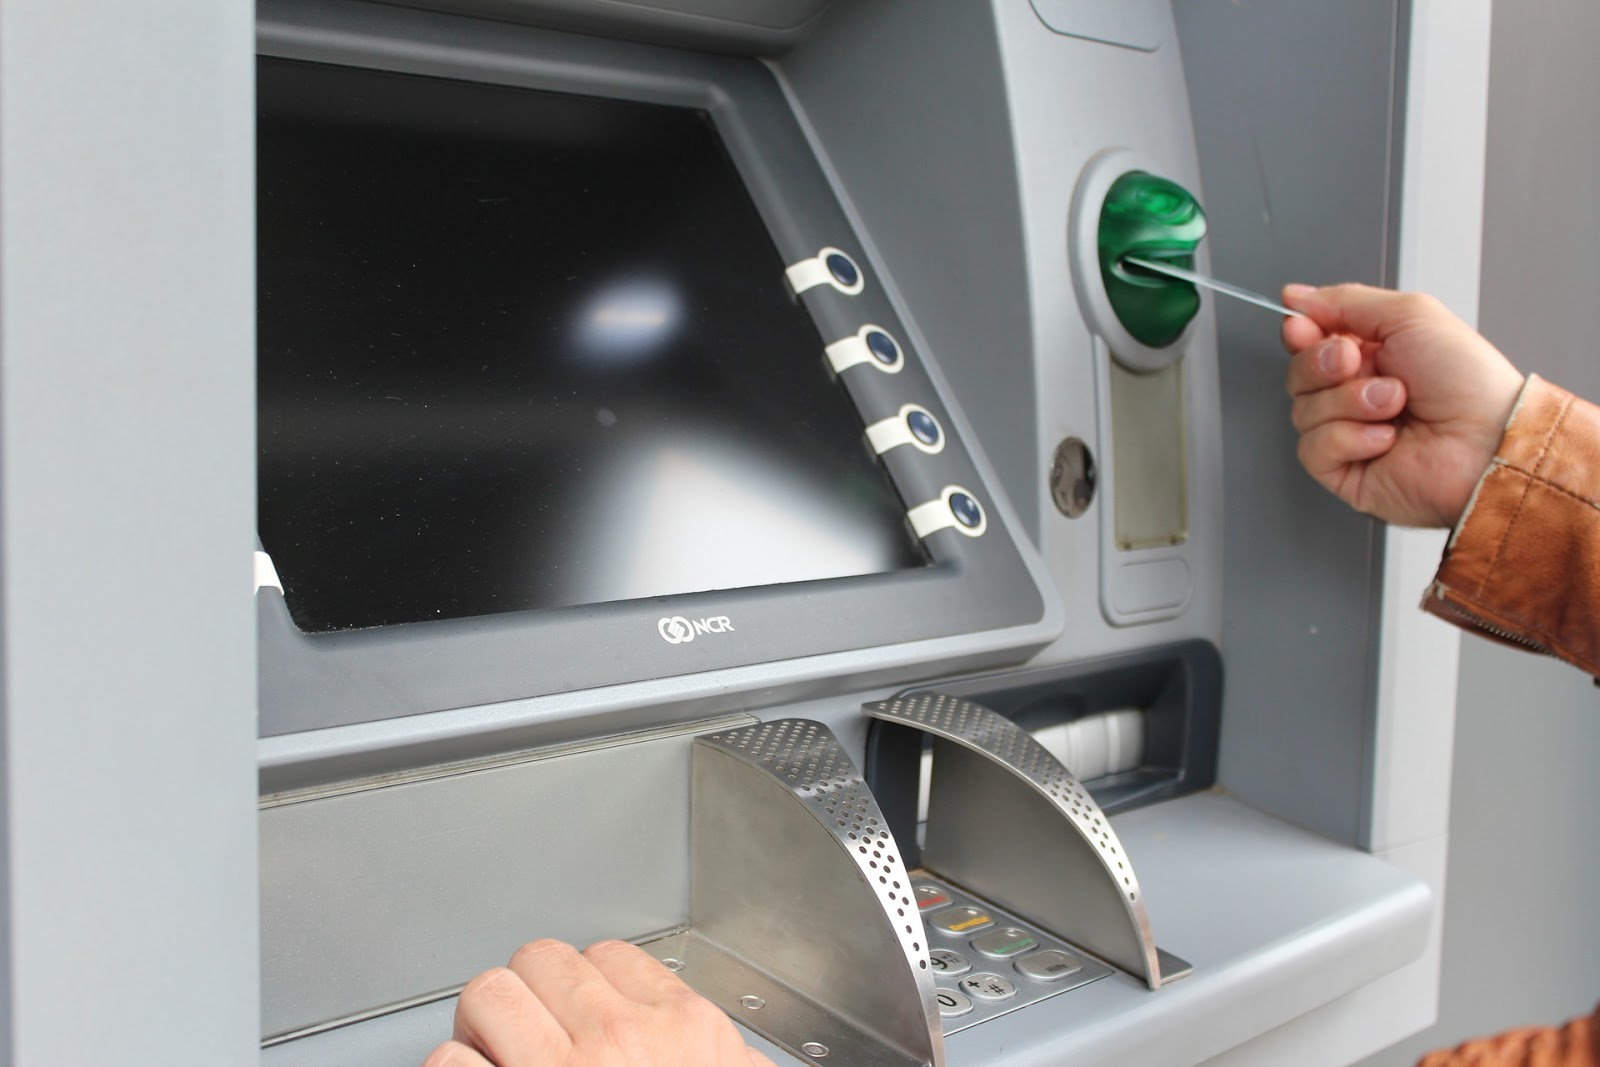 If you've ever used an ATM, you've used multifactor authentication.